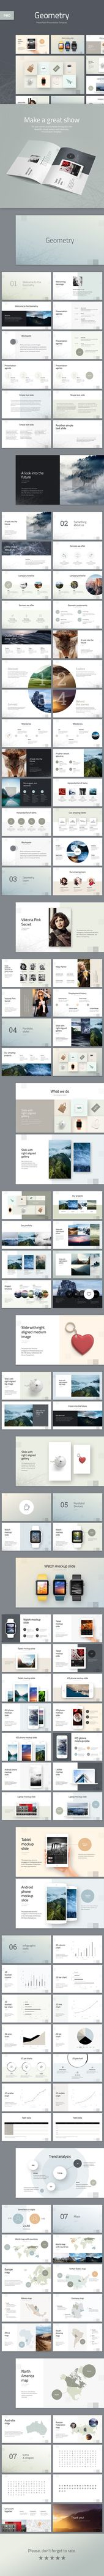 28 best images about AKTUELL on Pinterest